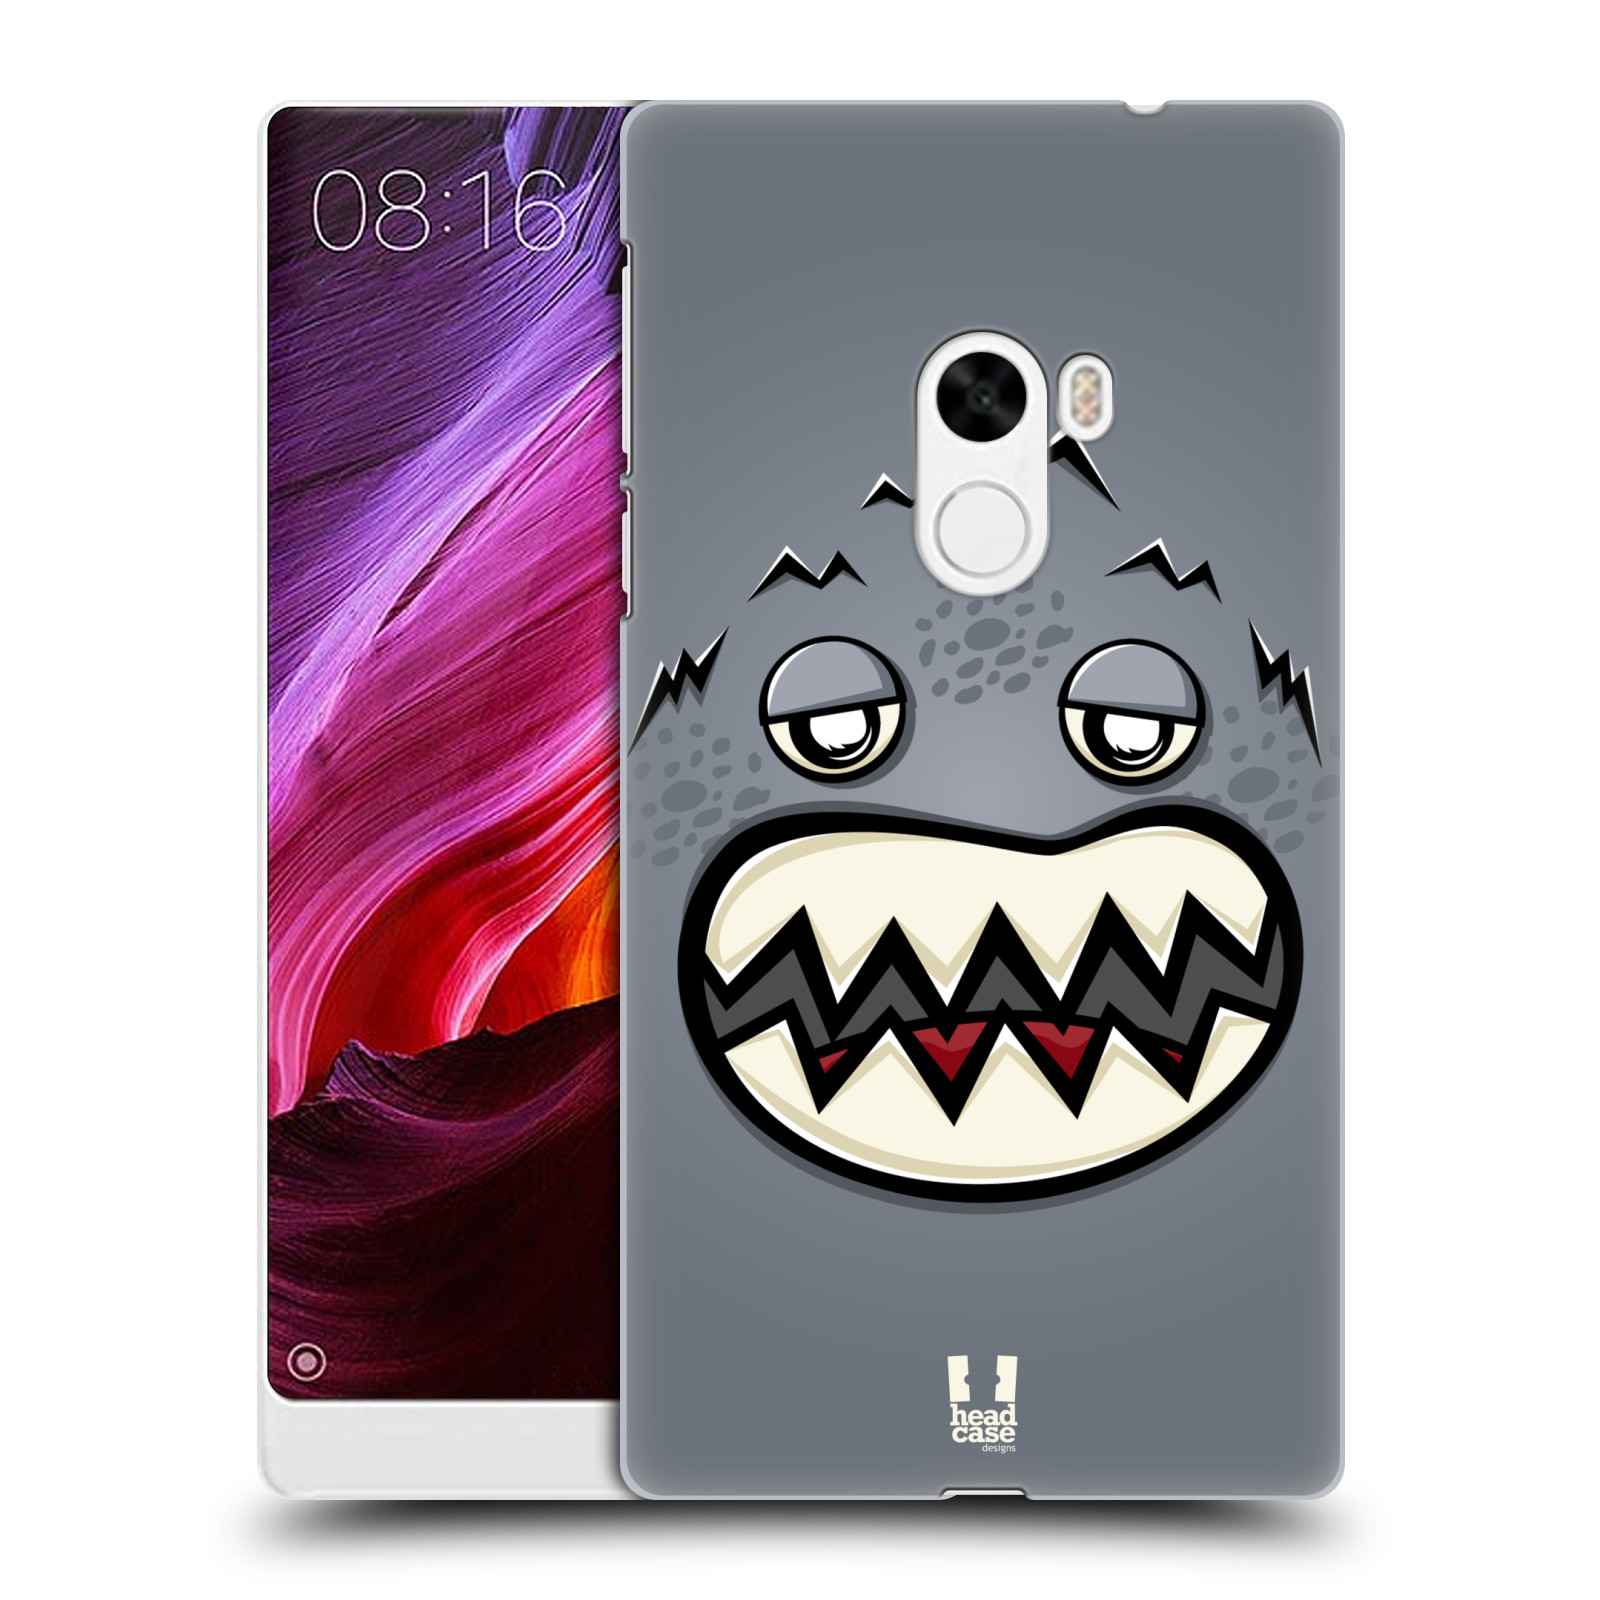 HEAD-CASE-DESIGNS-VISAGE-DE-MONSTRE-ETUI-COQUE-D-039-ARRIERE-POUR-XIAOMI-Mi-MIX